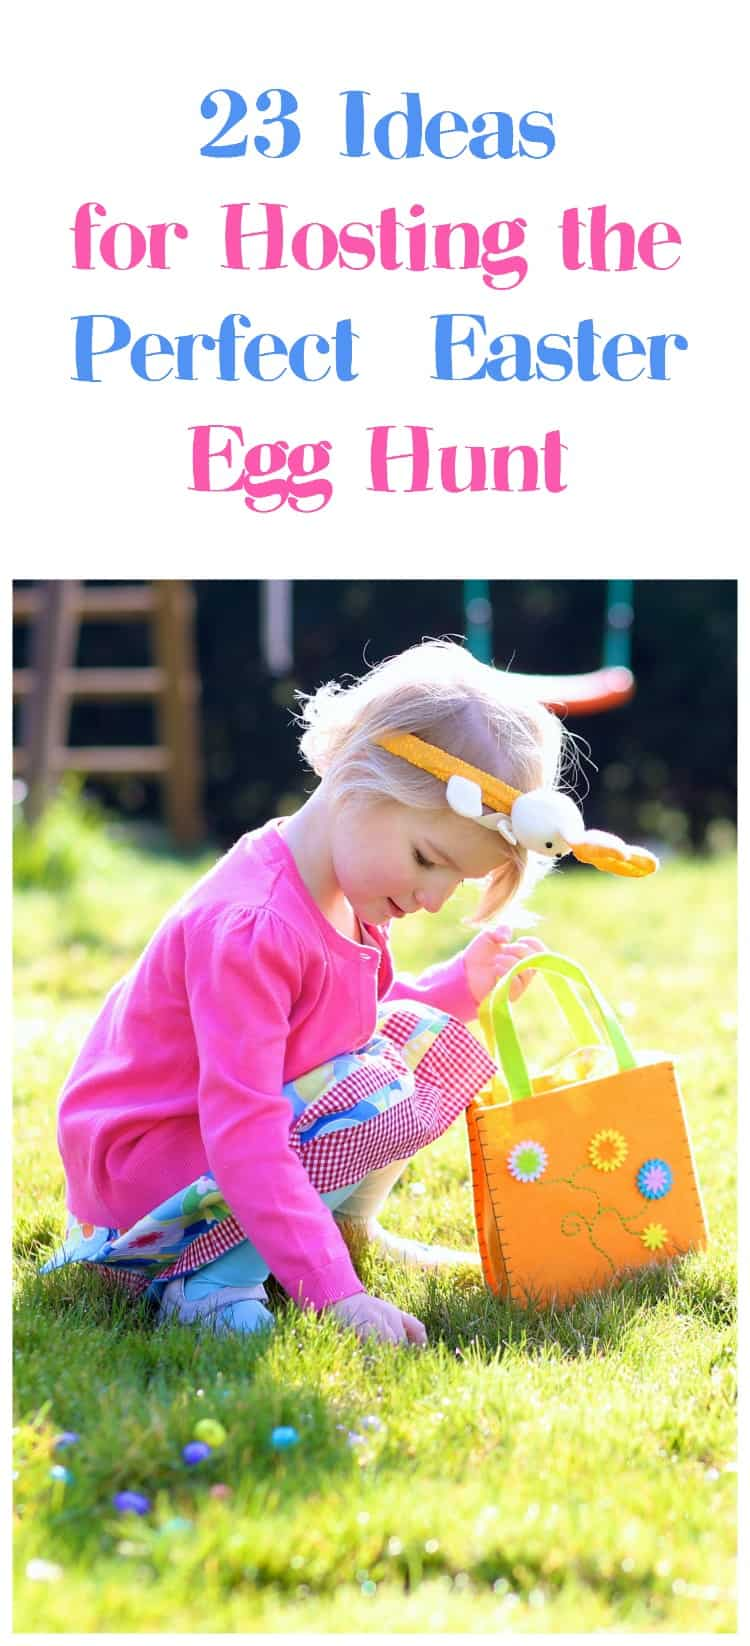 Planning an Easter egg hunt for kids? Check out 23 ideas & supplies to help you make the most memorable hunt ever!